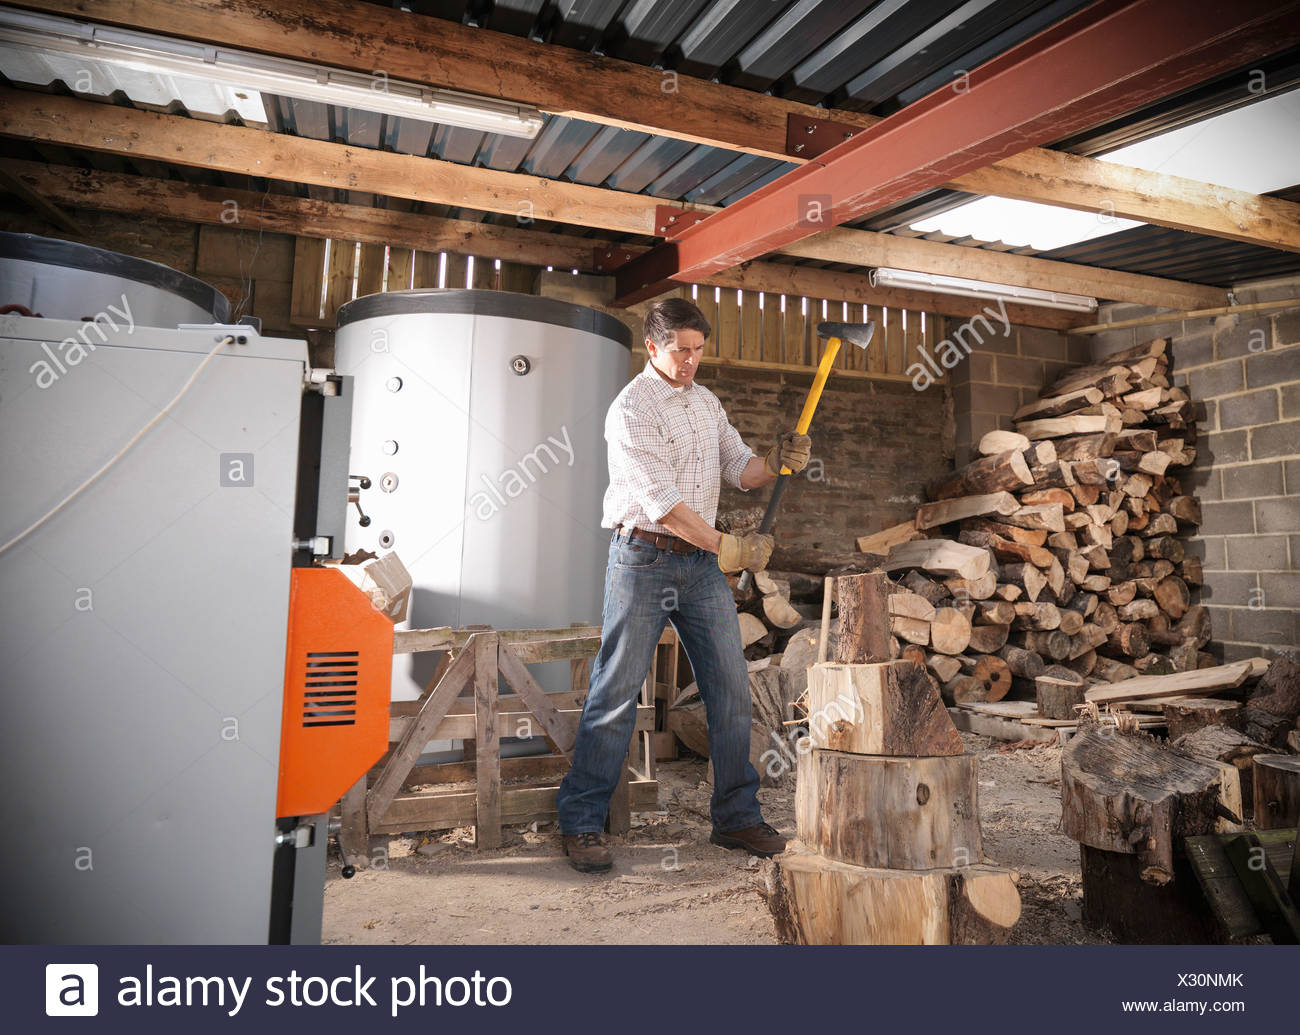 Man chopping wood in shed - Stock Image